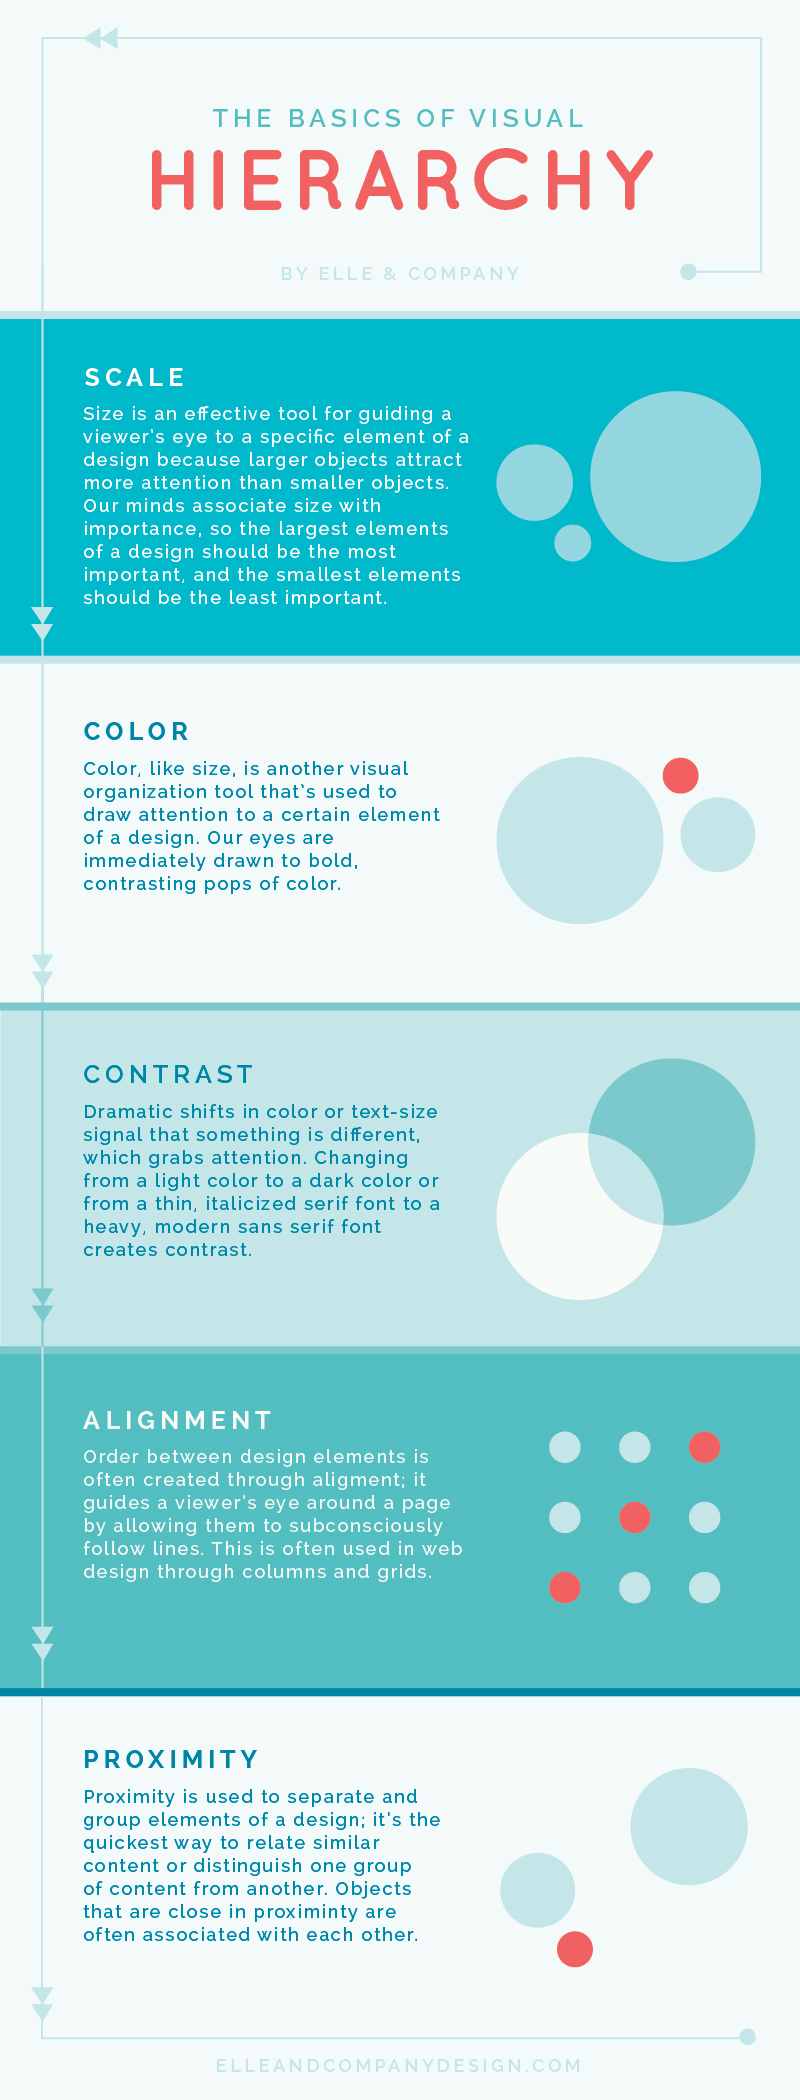 The Basics of Visual Hierarchy | Elle & Company